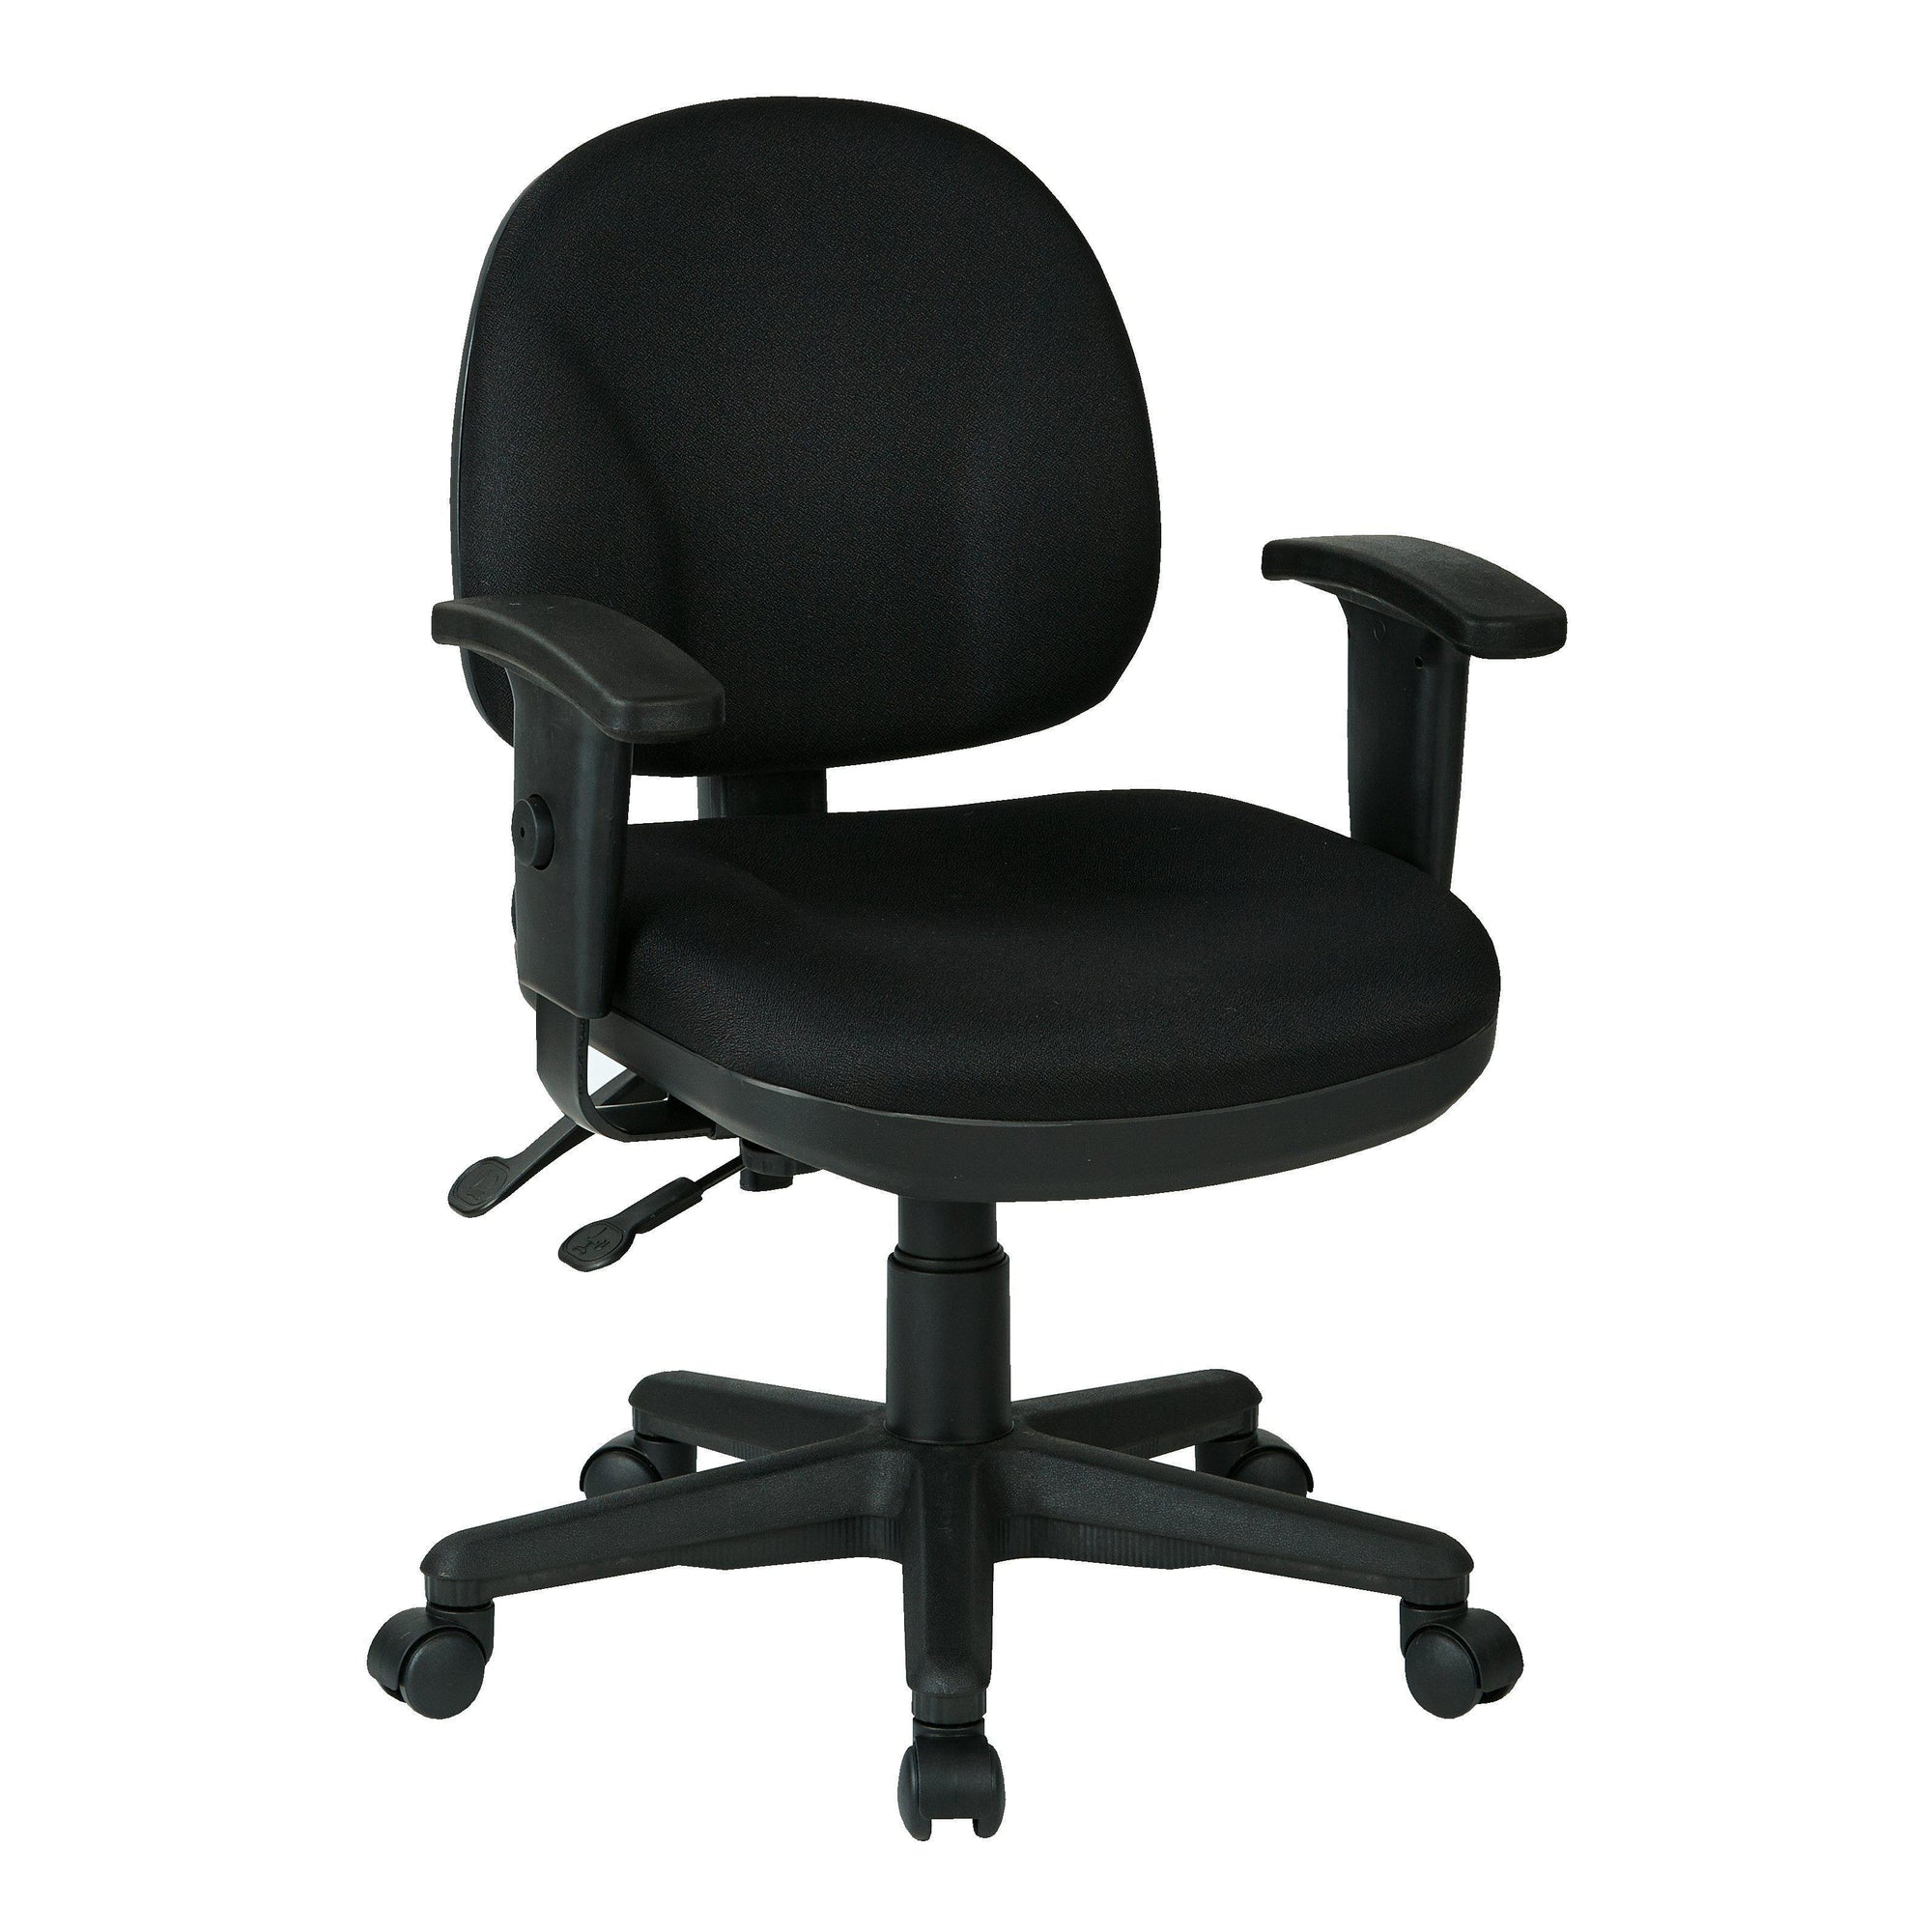 Sculptured Ergonomic Manager's Chair with Adjustable Arms